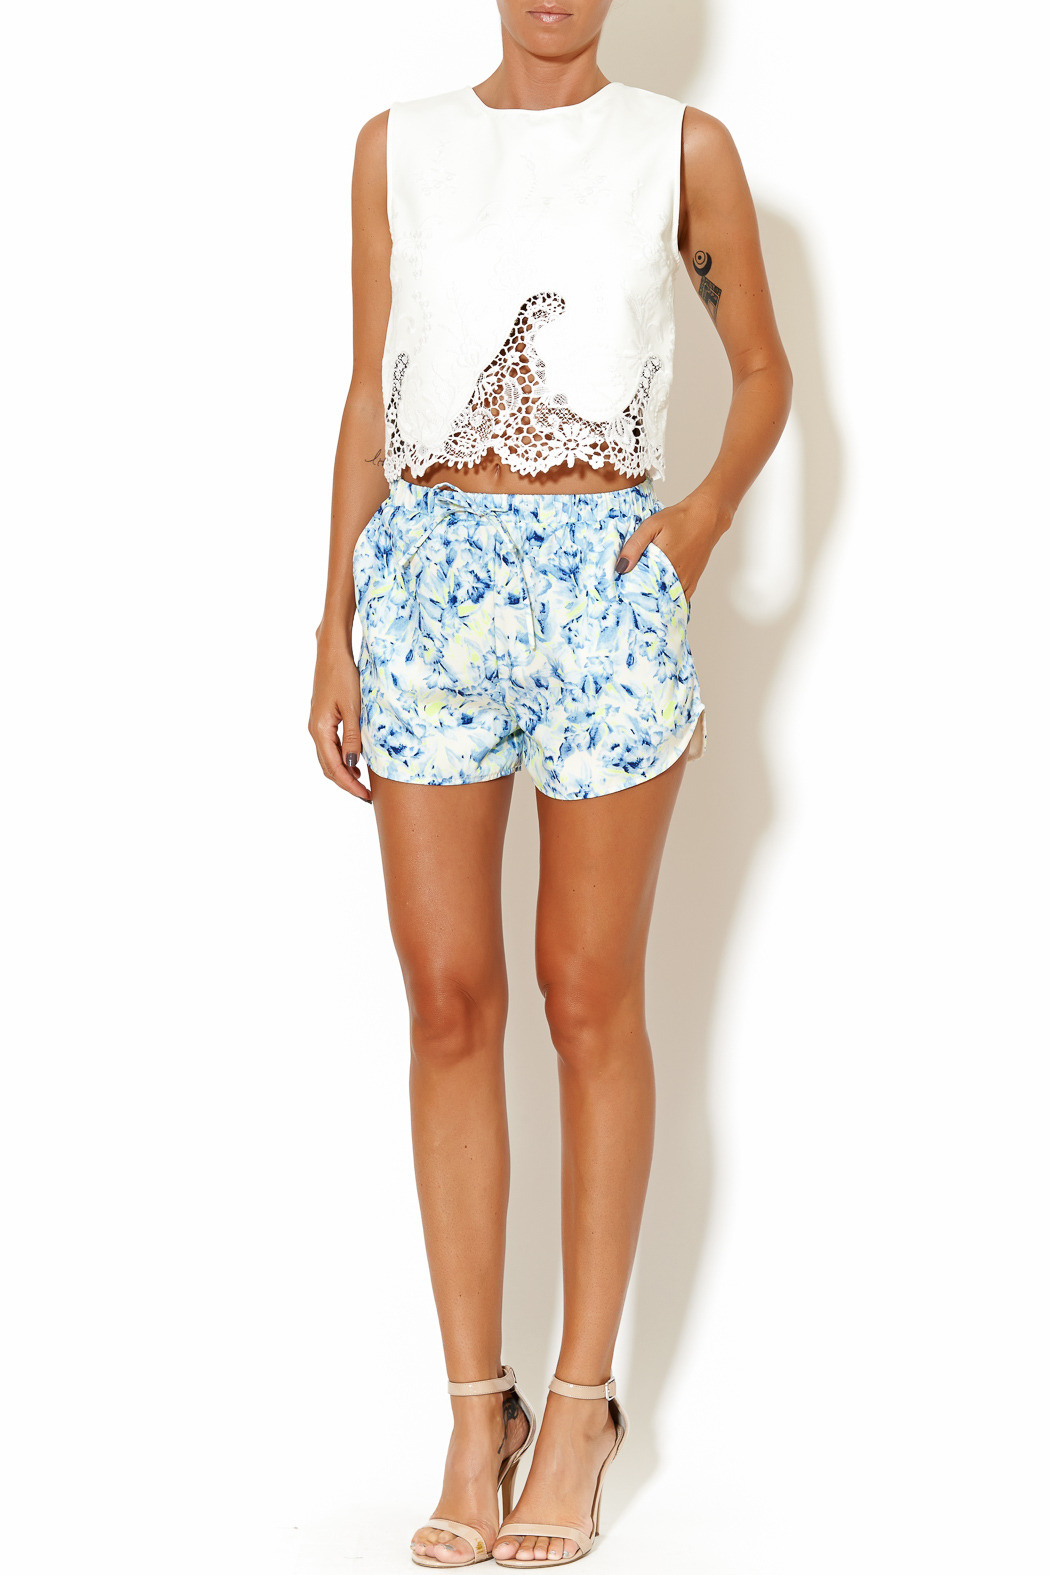 Lovers + Friends Adore Shorts - Front Full Image